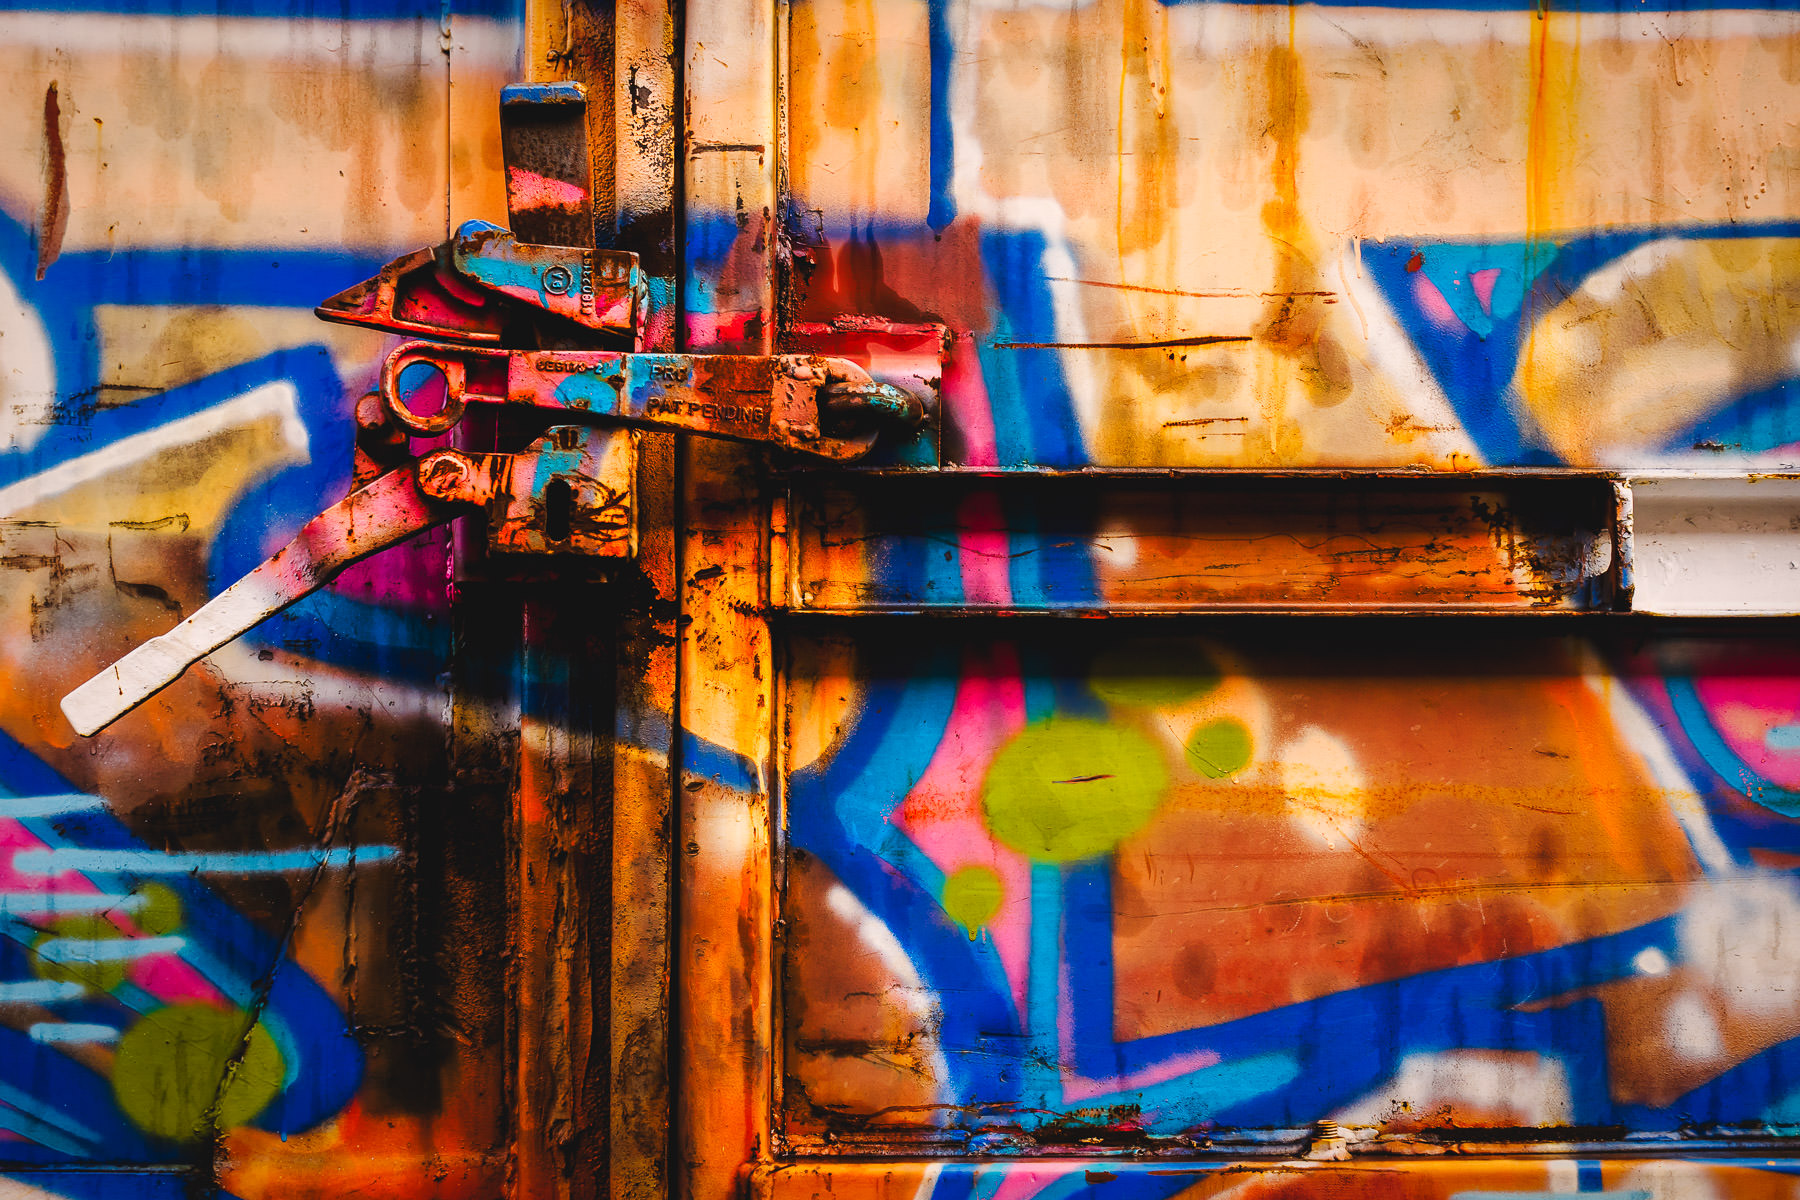 A graffiti-covered latch on a boxcar spotted in a Galveston, Texas, railyard.